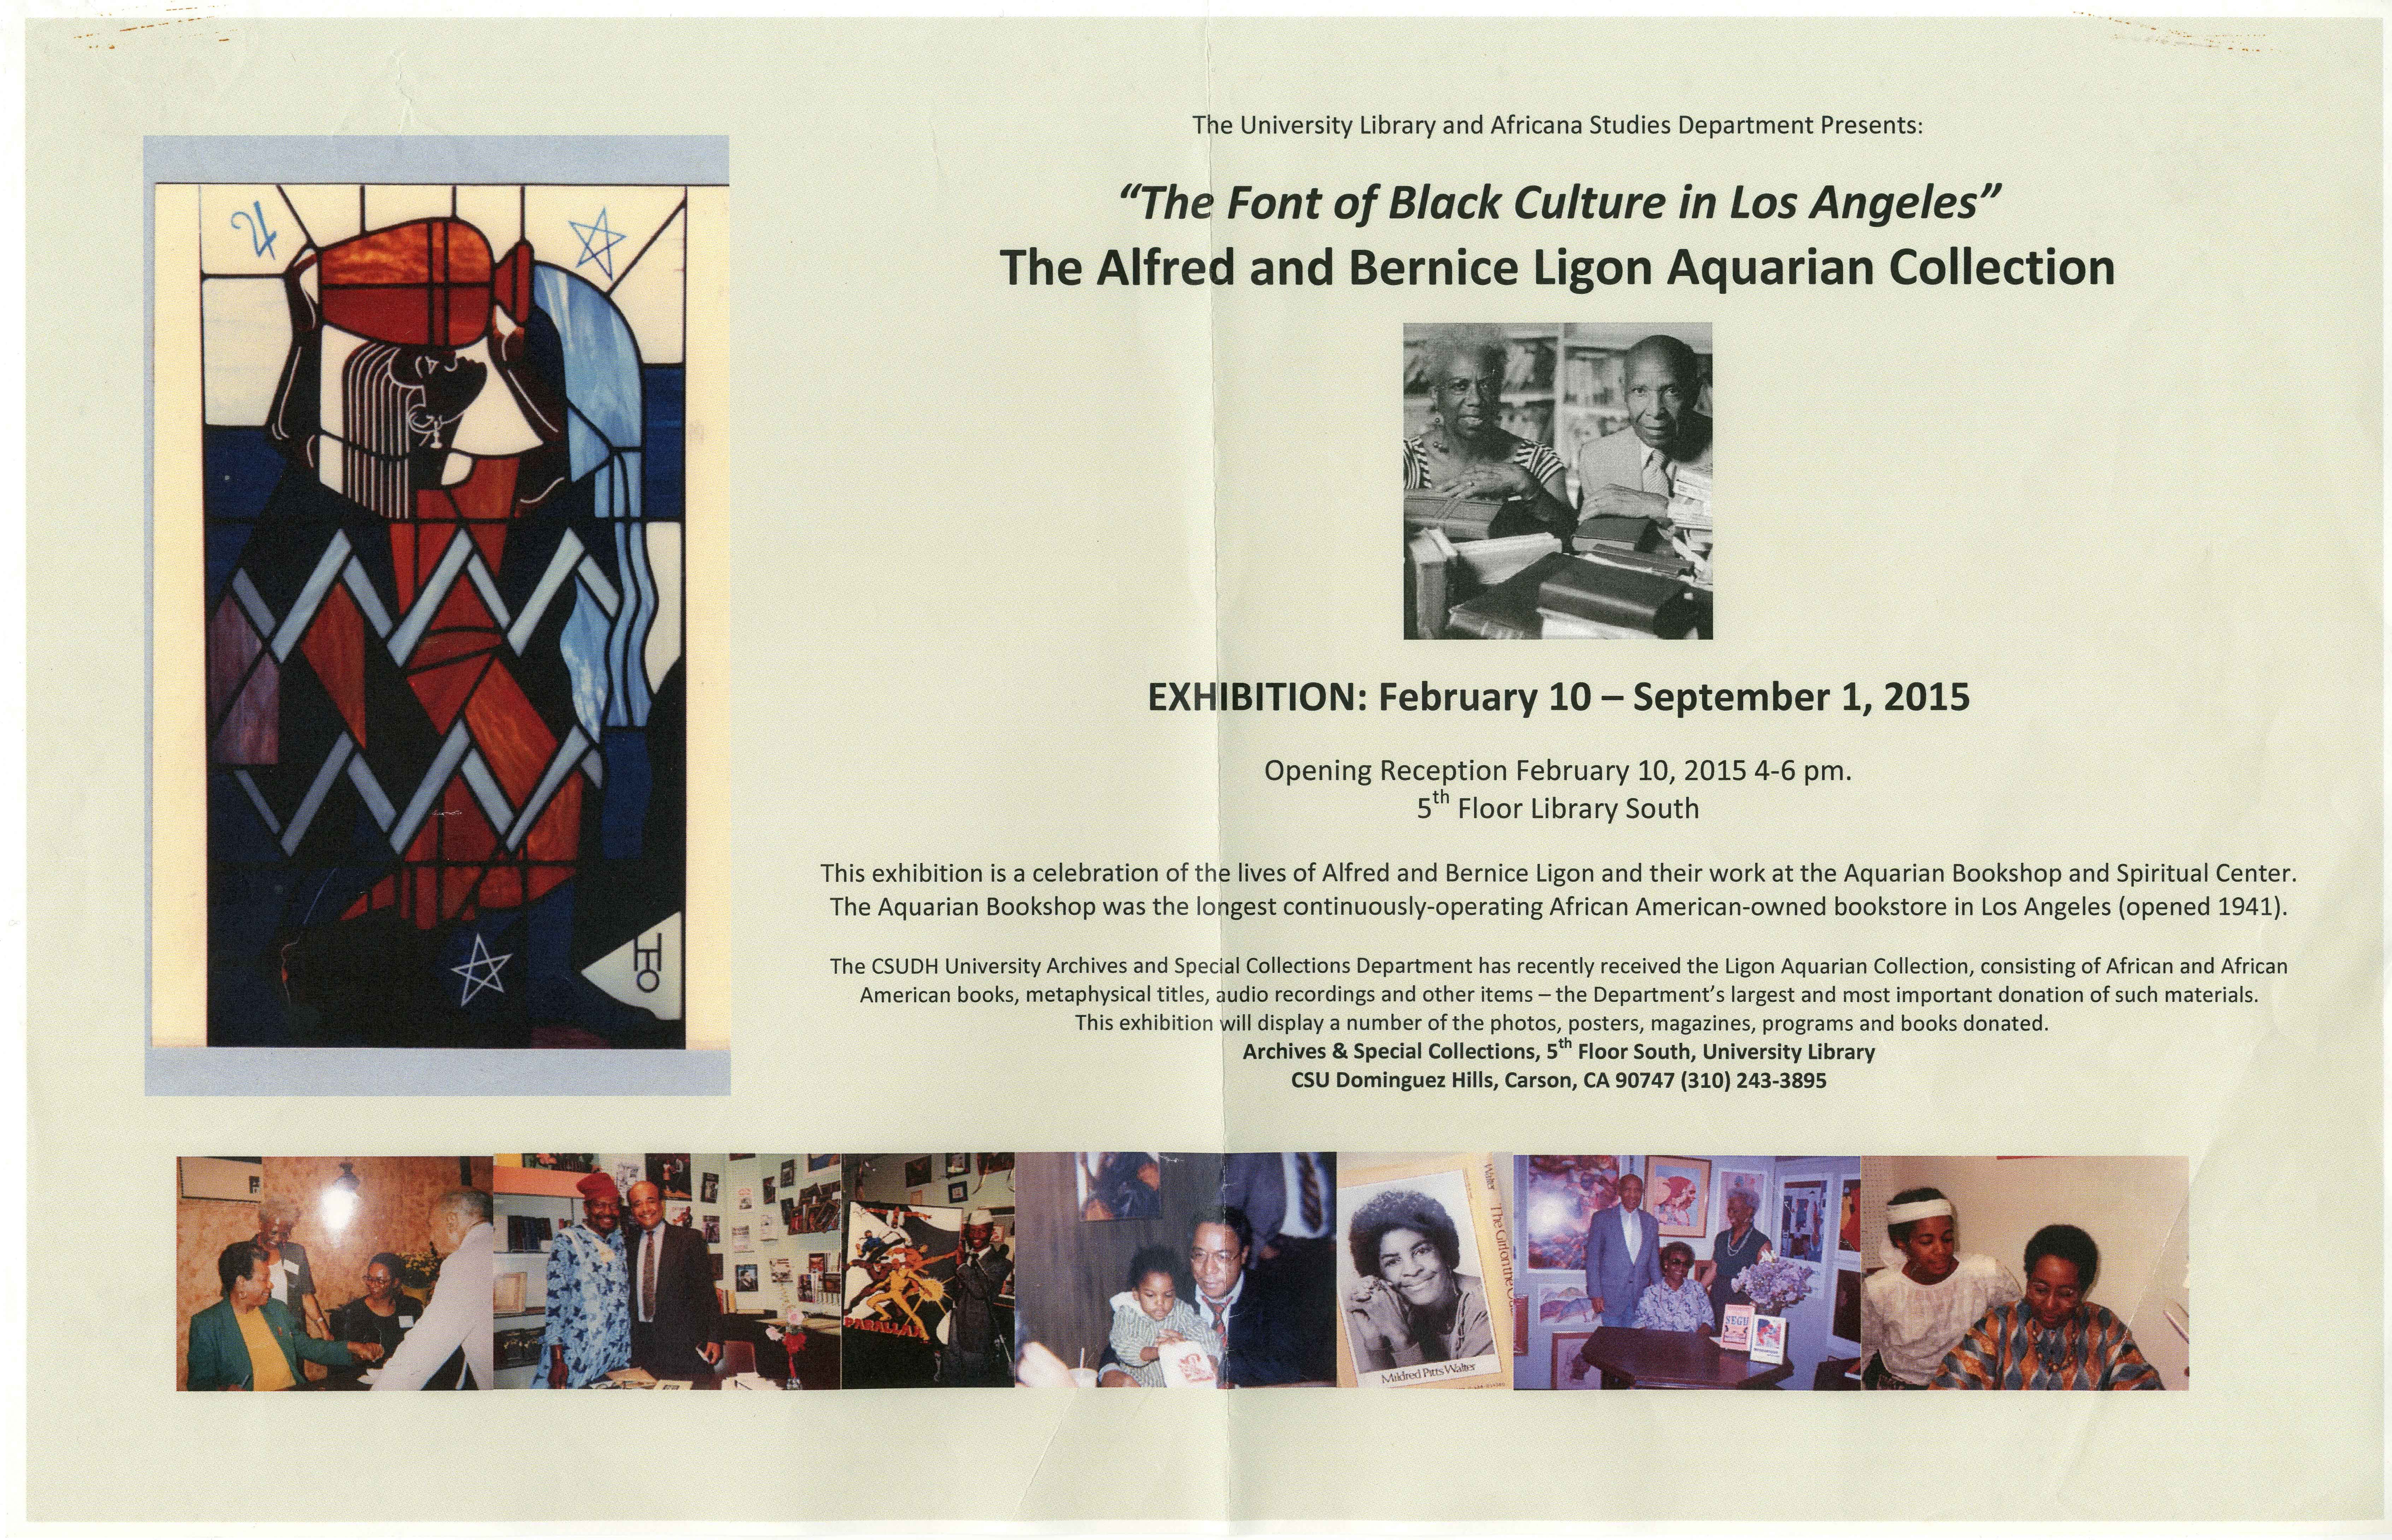 Alfred and Bernice Ligon Aquarian Collection exhibit flyer